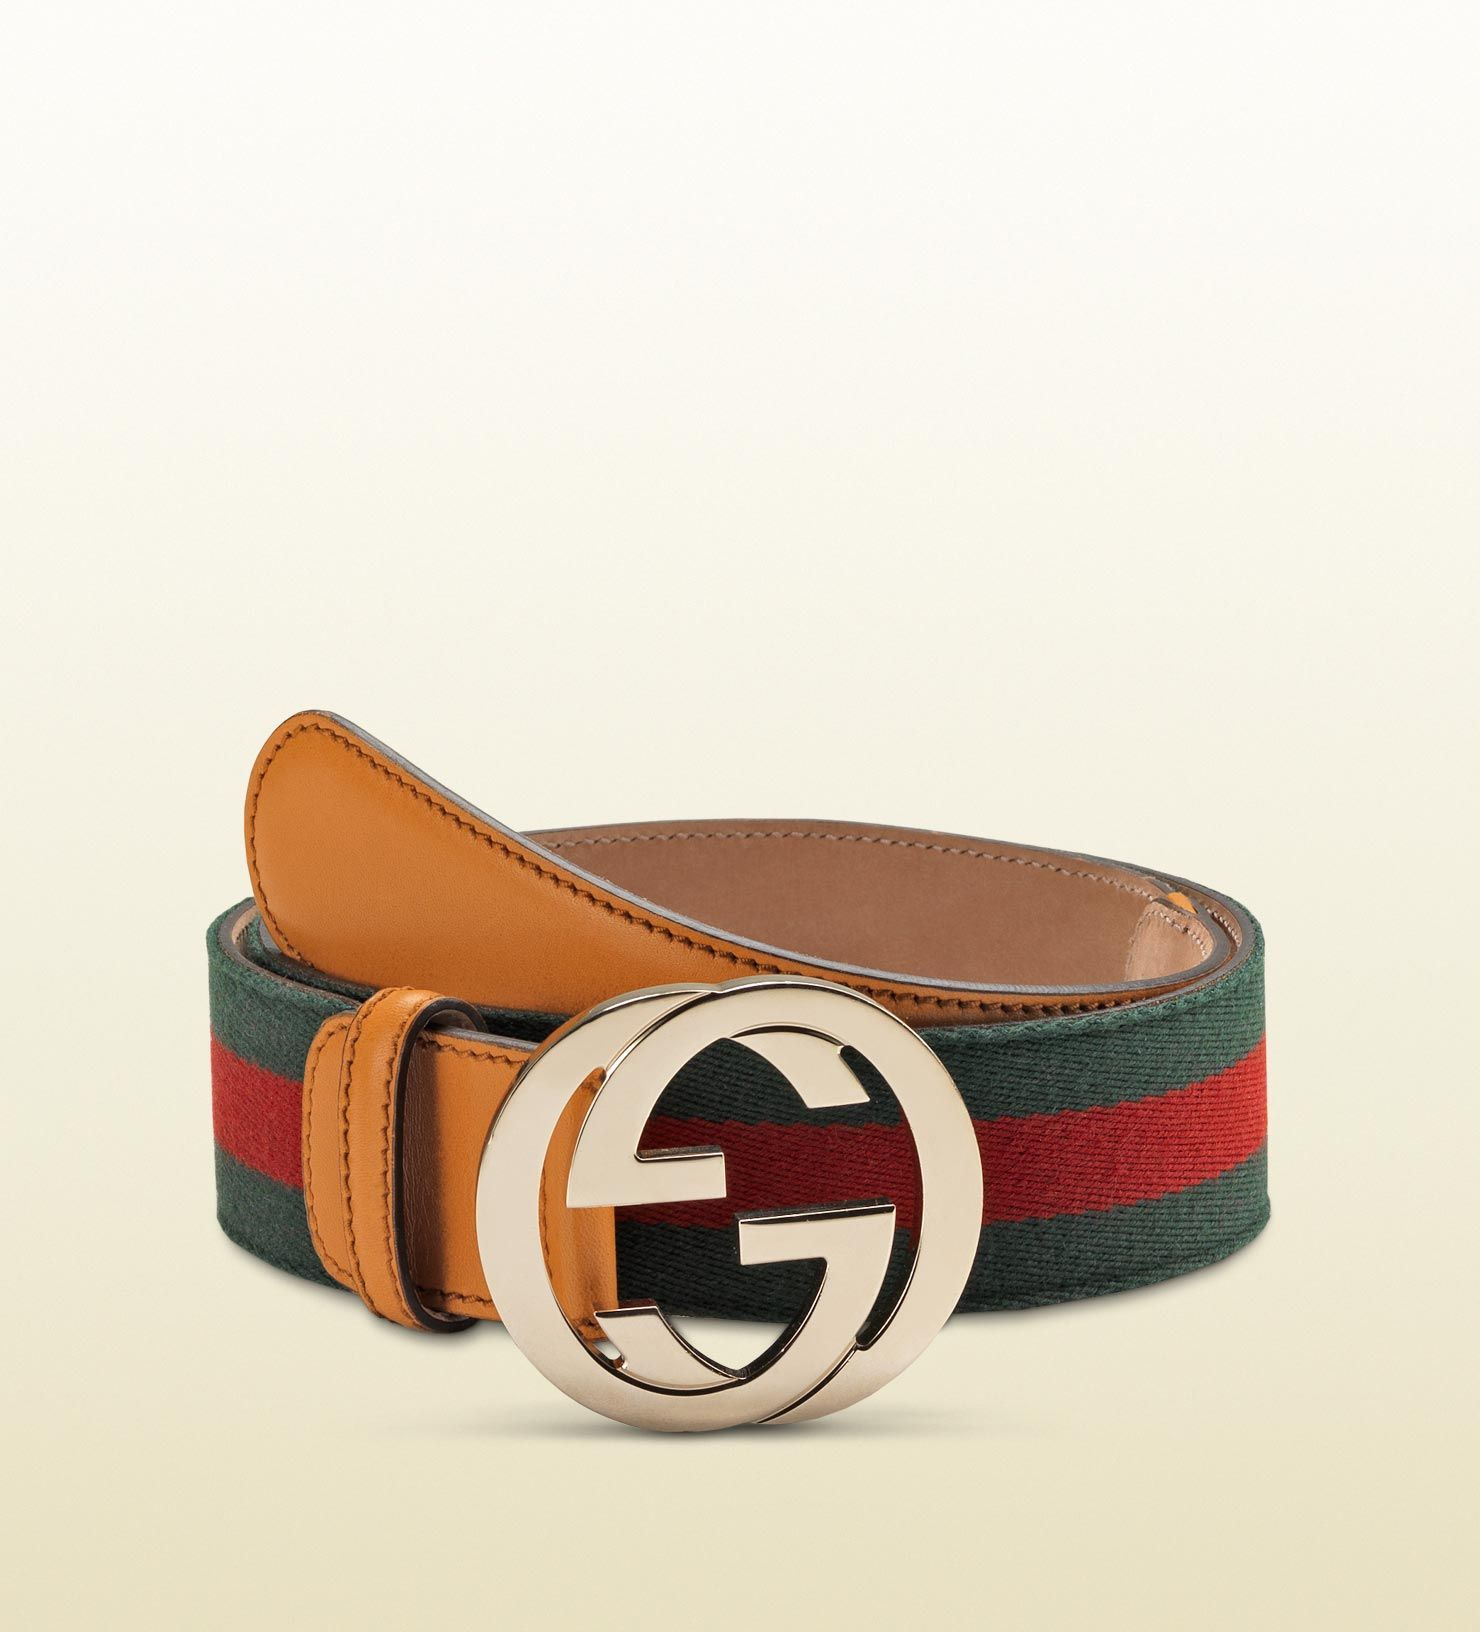 7e1a1cb9a12 Gucci - belt with interlocking G buckle 114876H17OG8498